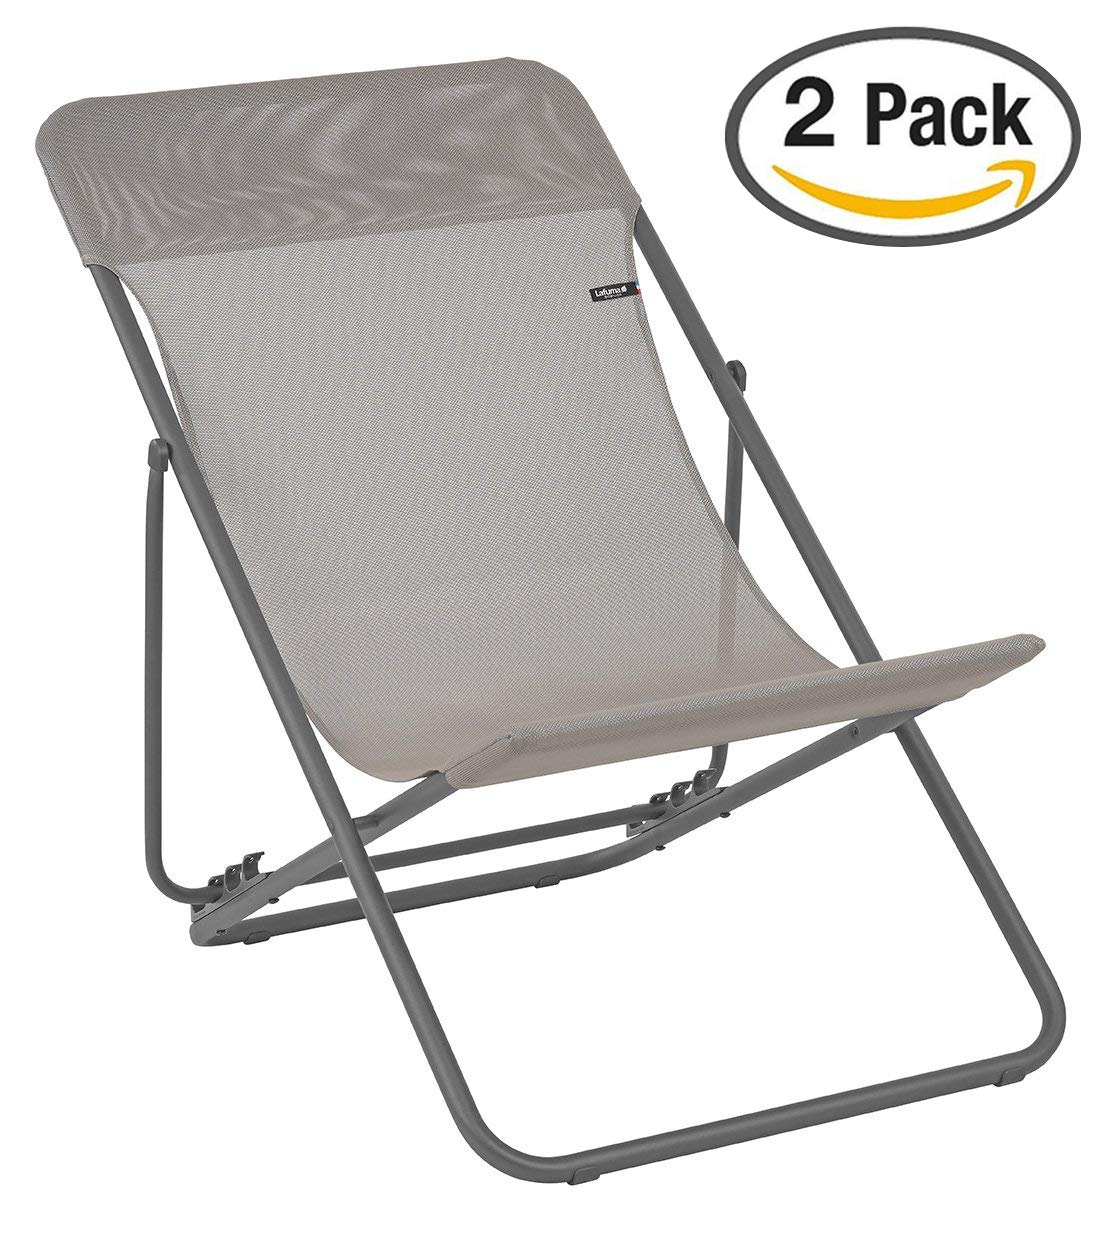 Lafuma LFM2502-8556 Maxi Transat Folding Sling Chair with Basalt Steel Frame and Batyline Fabric, ((Set of 2), Terre